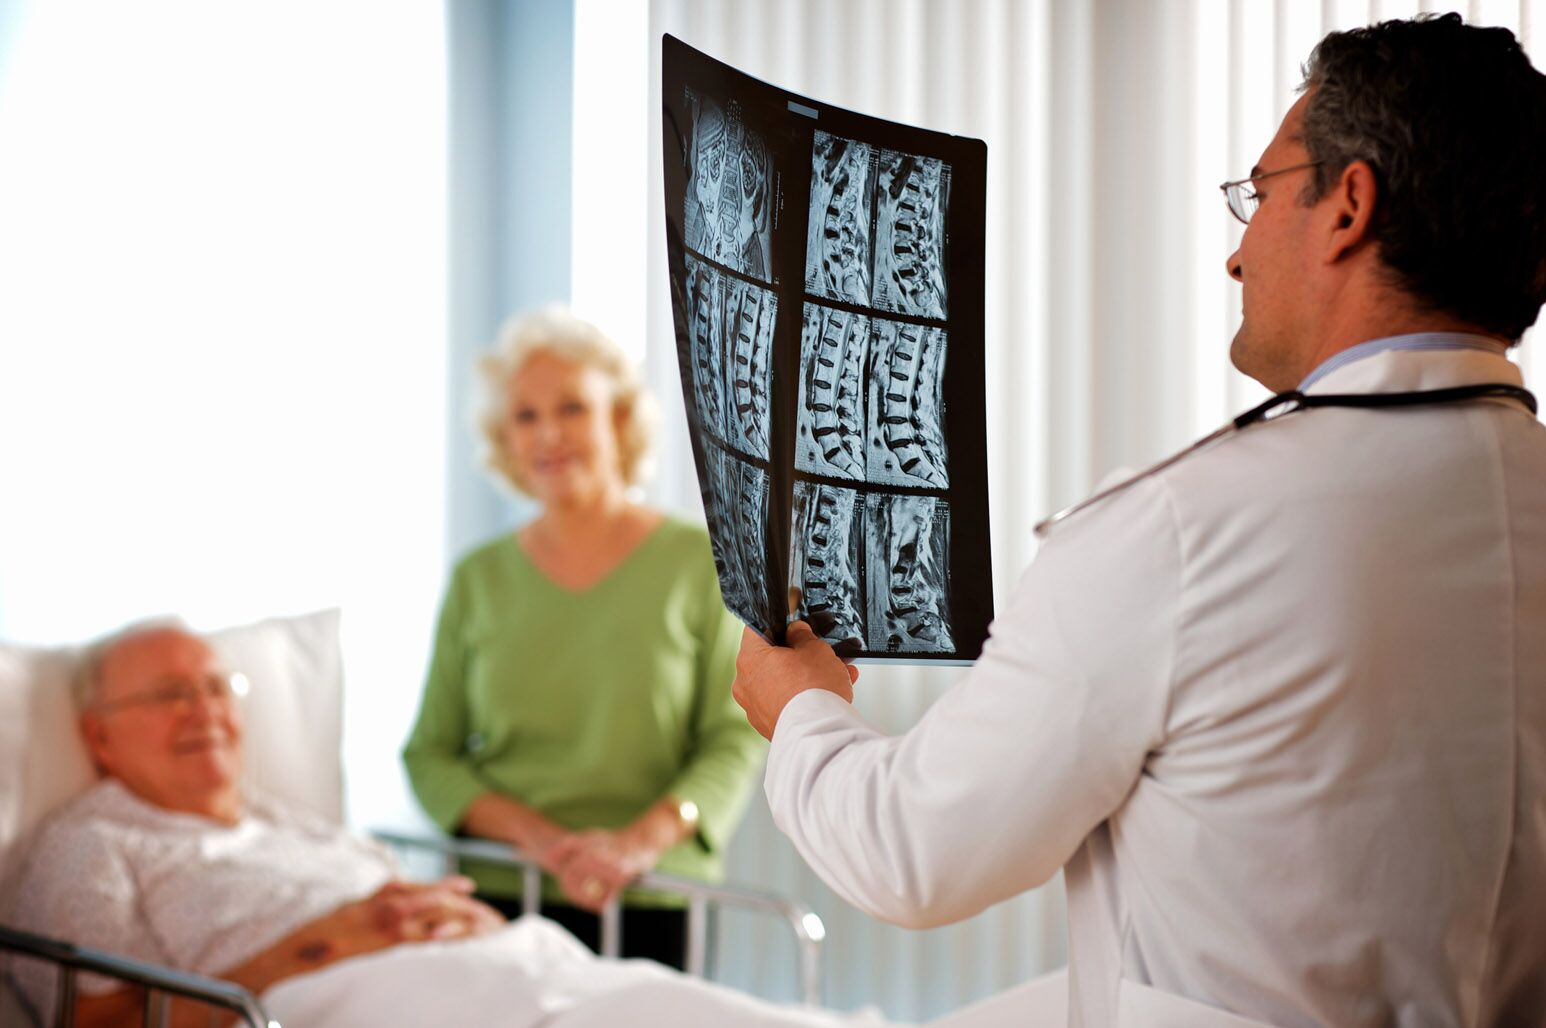 A doctor reviews diagnostic imaging of an elderly man's spine.